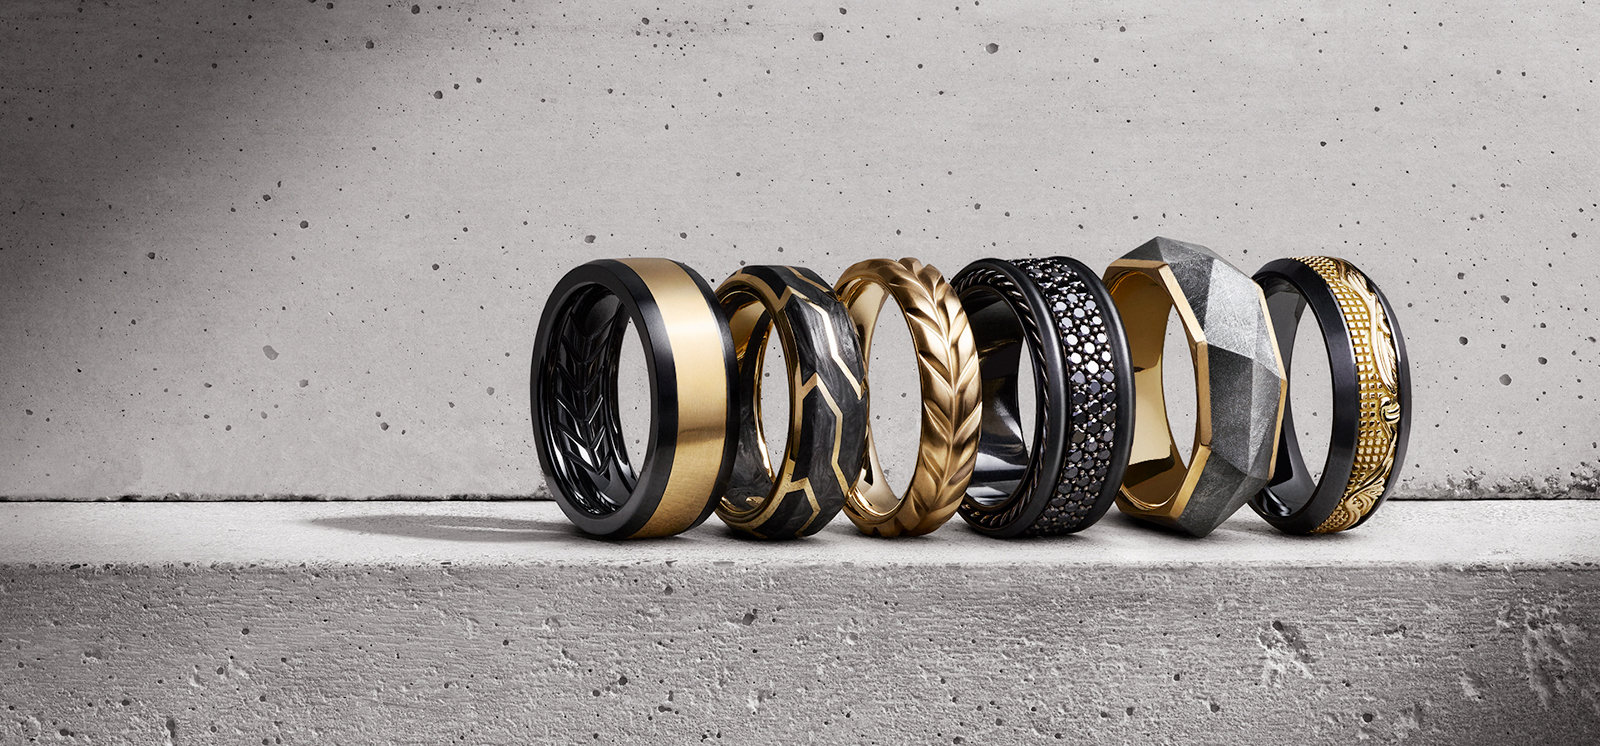 David Yurman Beveled, Forged Carbon, Chevron, Streamline®, Faceted and Waves bands with or in 18K yellow gold and black titanium, forged carbon, black diamonds or meteorite, in a row in a ray of light on a white stone.